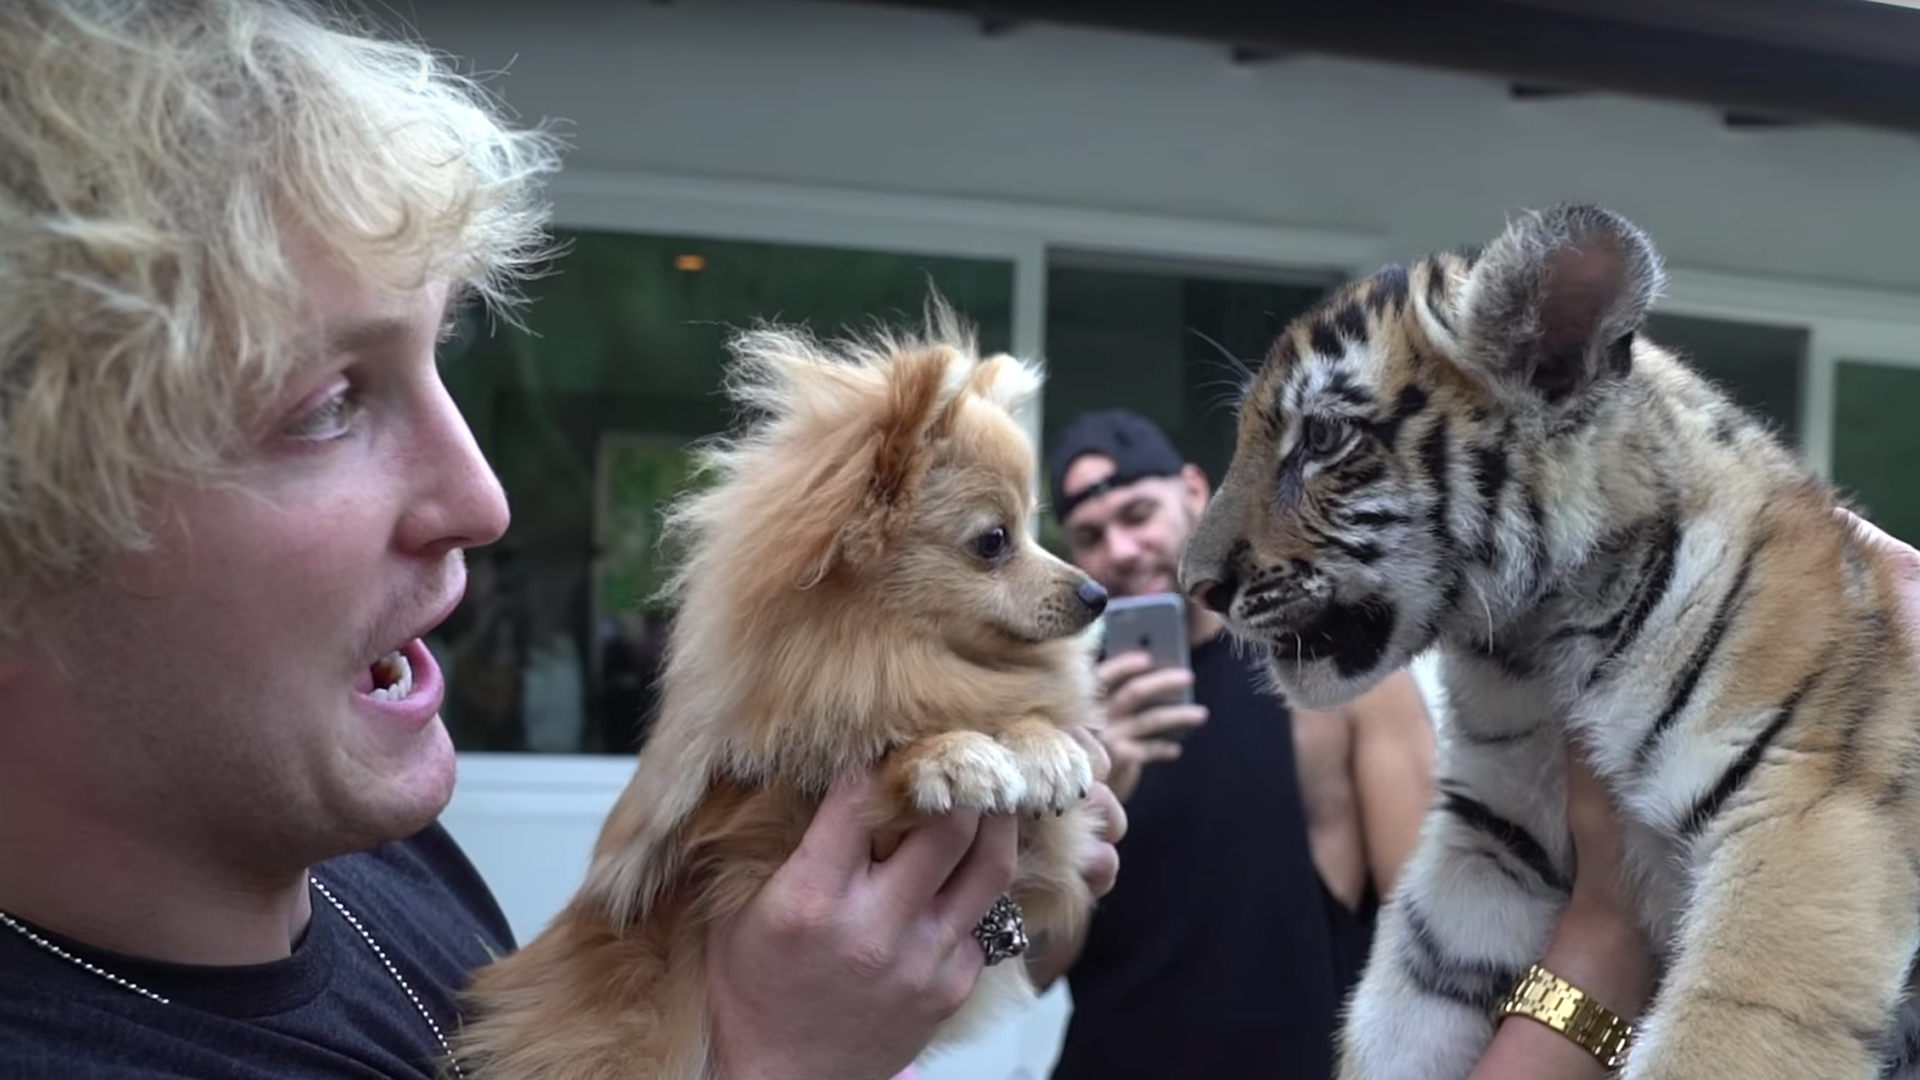 Logan Paul holds his dog in front of a tiger cub in a video posted to his YouTube channel on Oct. 21, 2017.